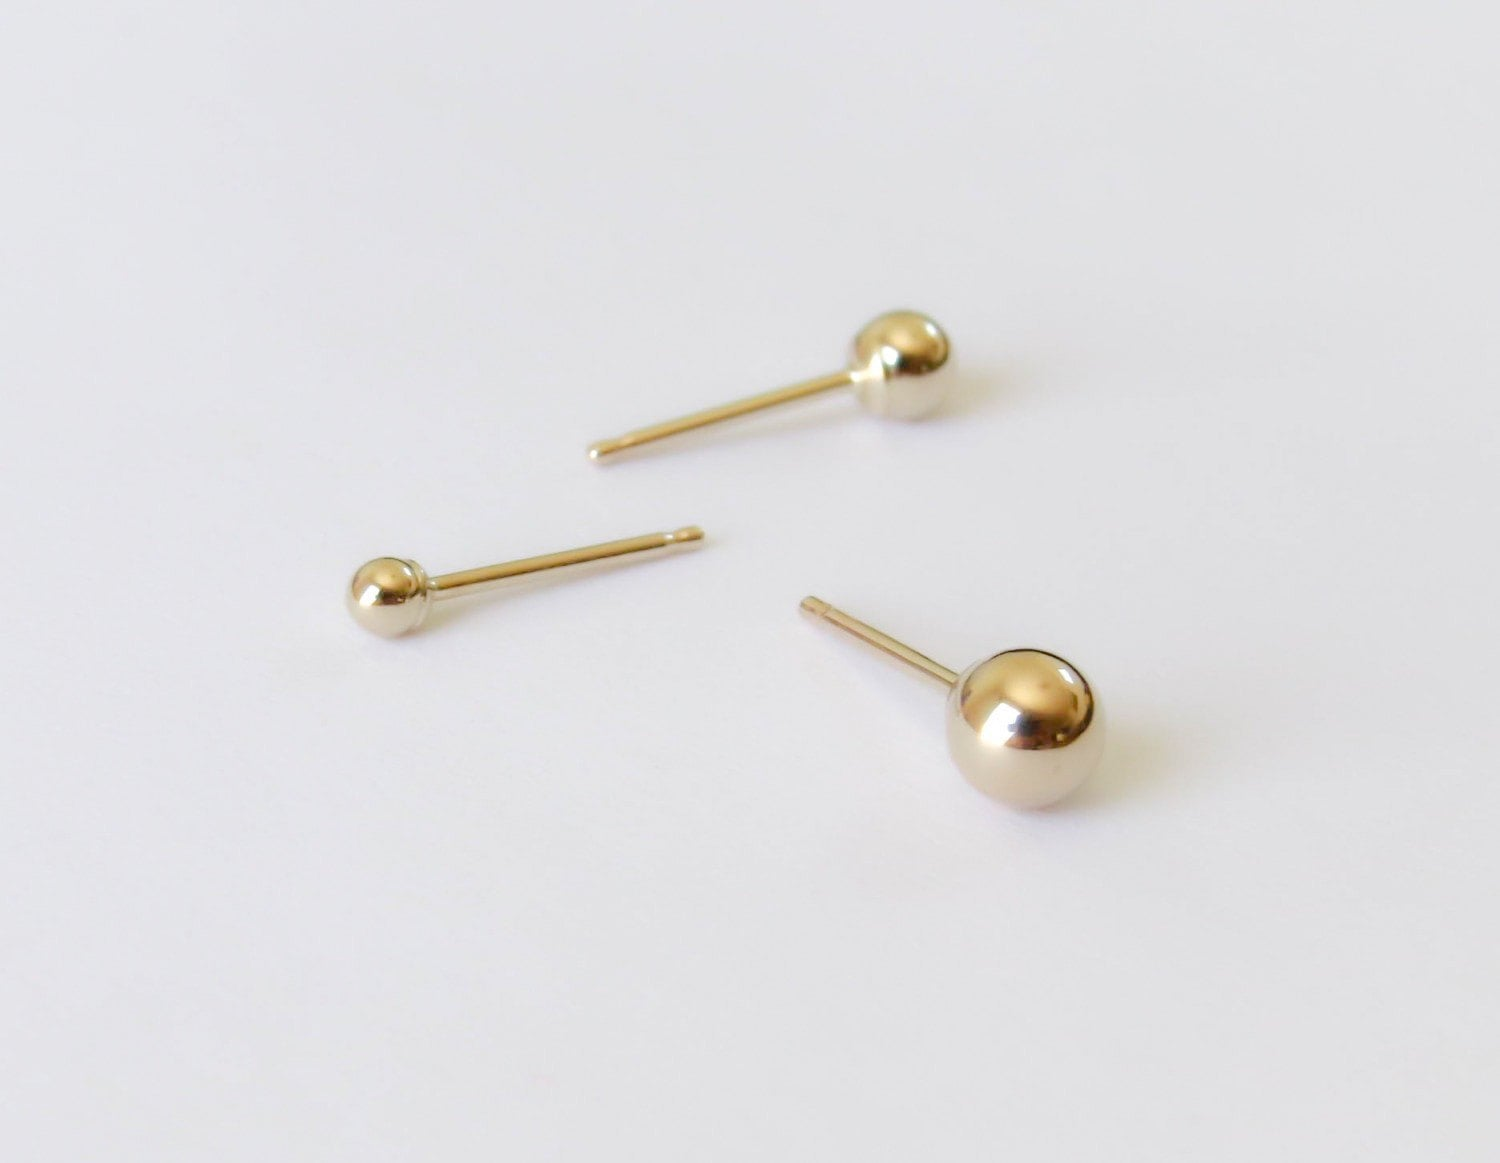 gold simple of products eccentrics edit boutique lpsummer mkp earrings